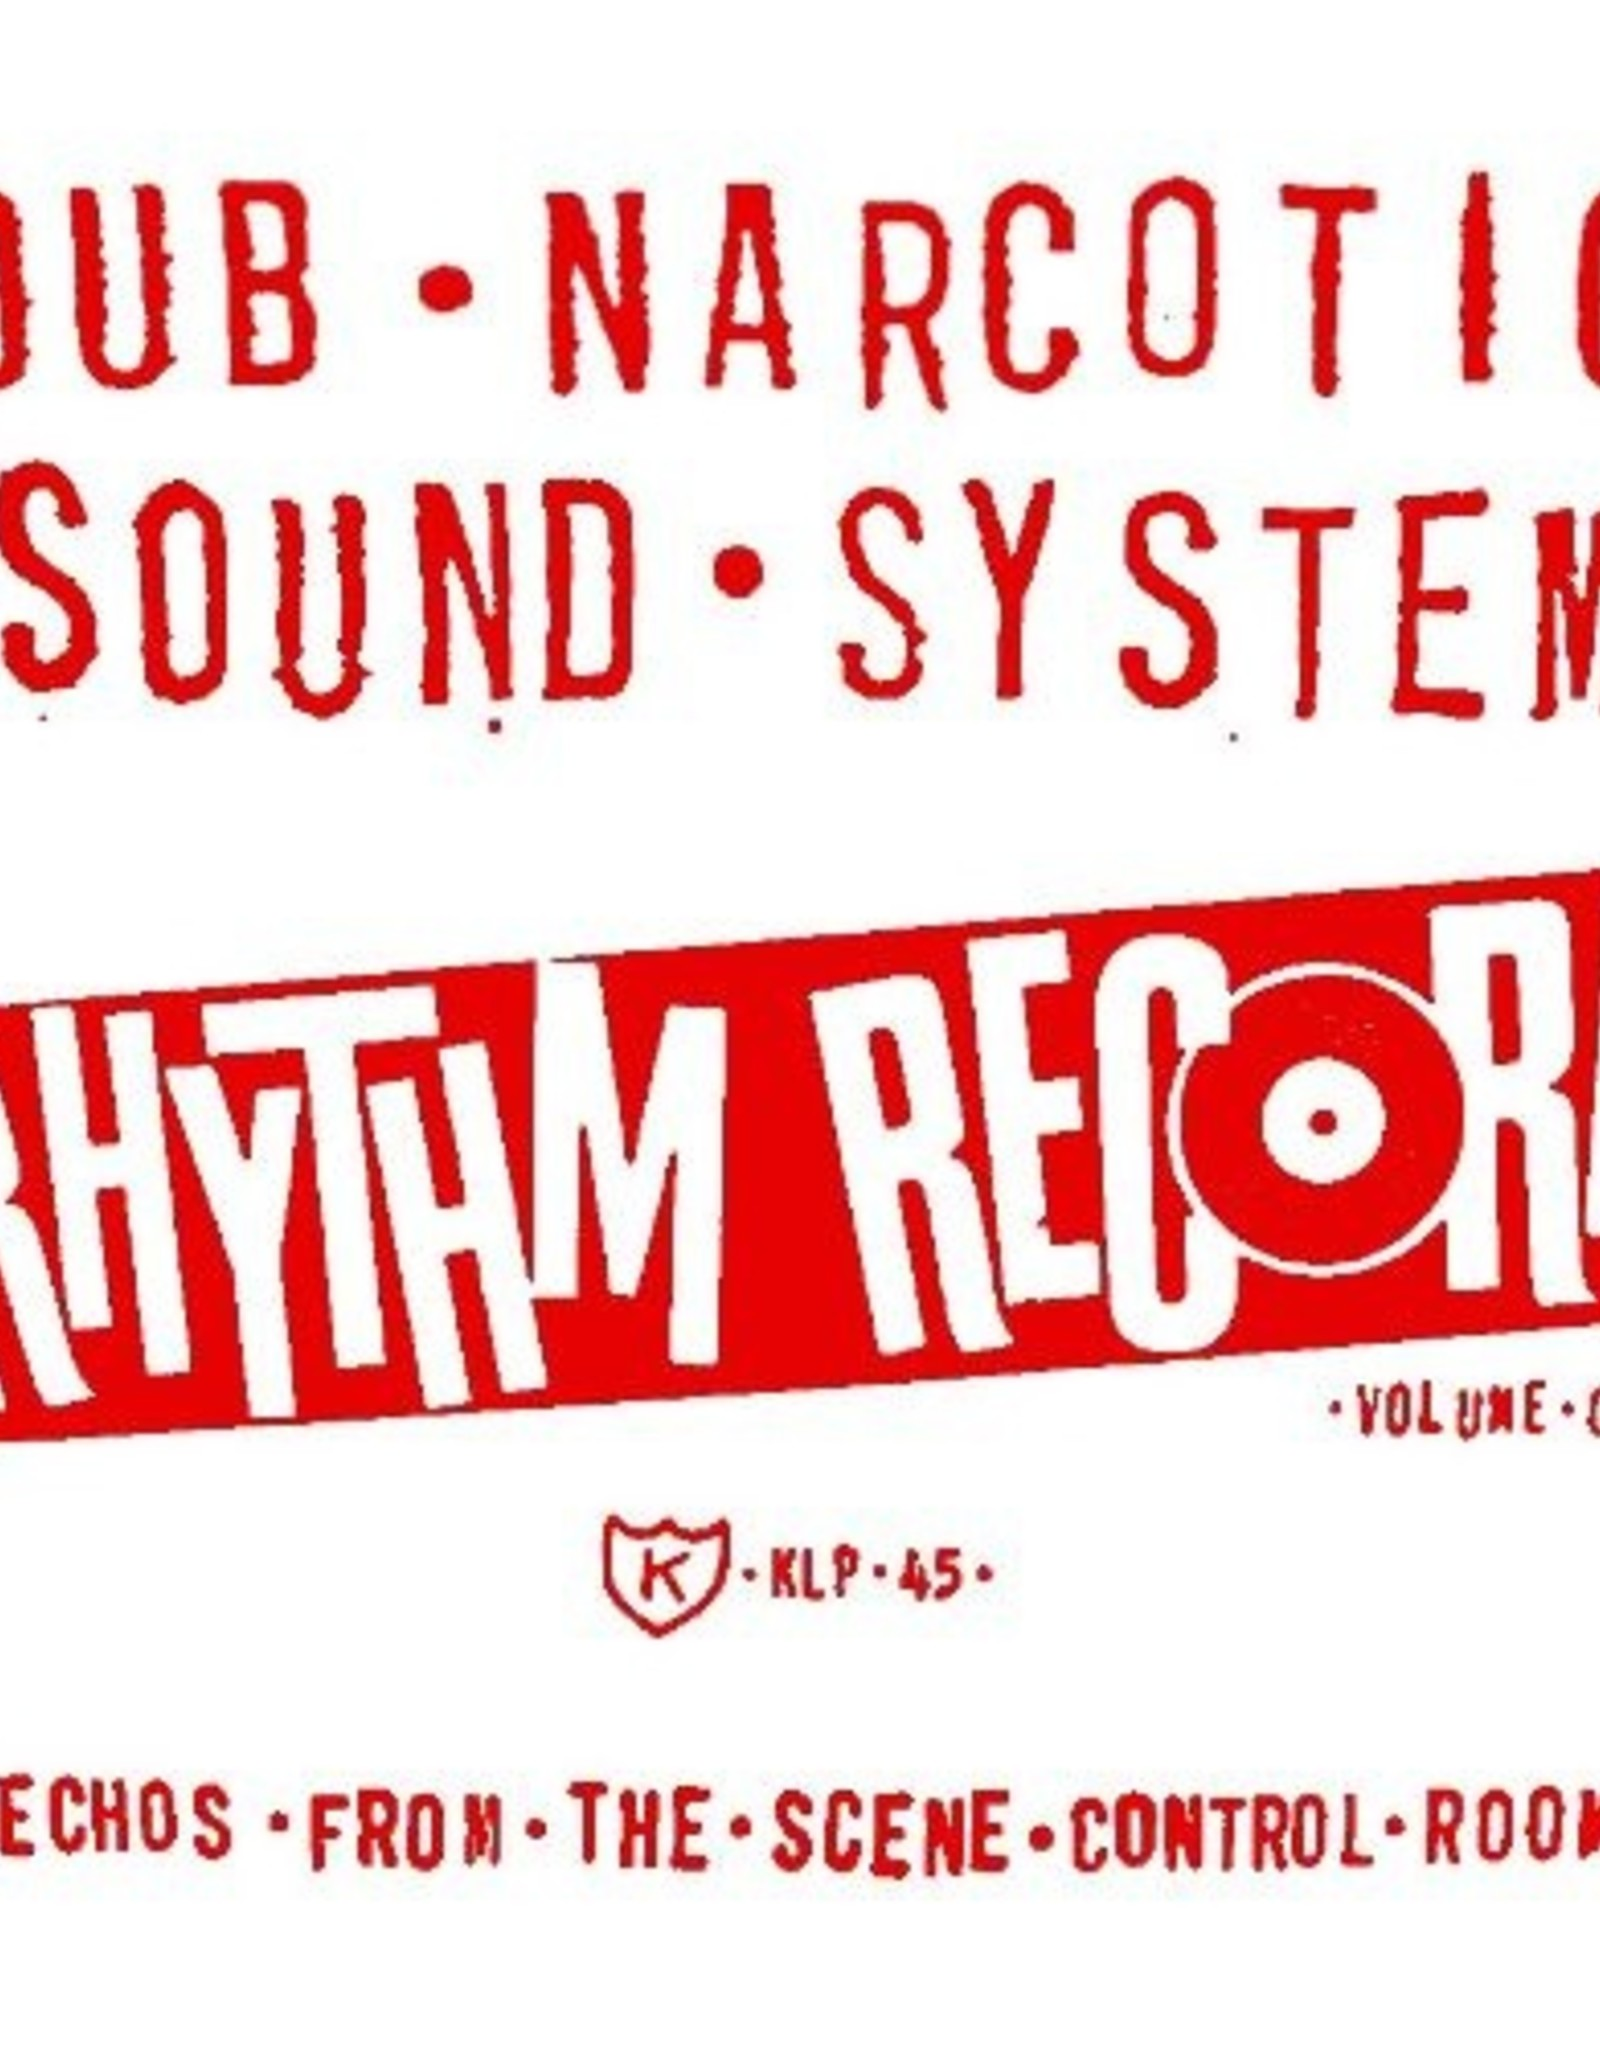 Dub Narcotic Sound System - Rhythm Record Vol. One Echoes From The Scene Control Room